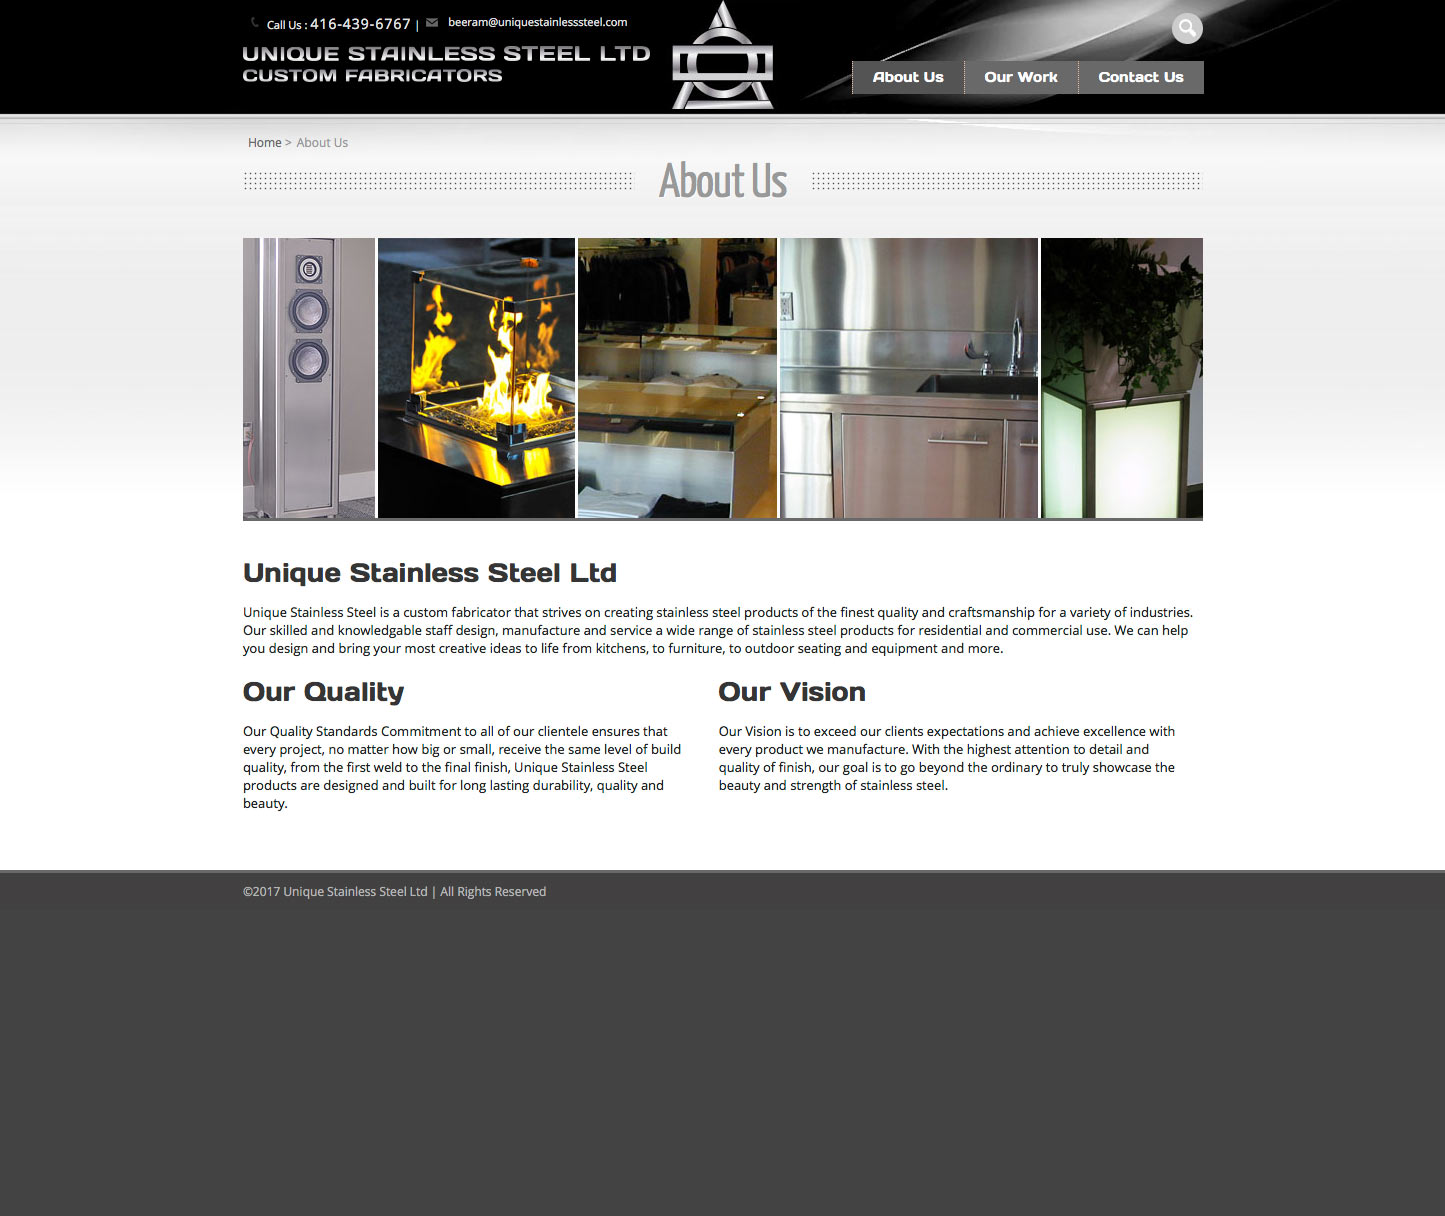 UniqueStainlessSteel.com About page